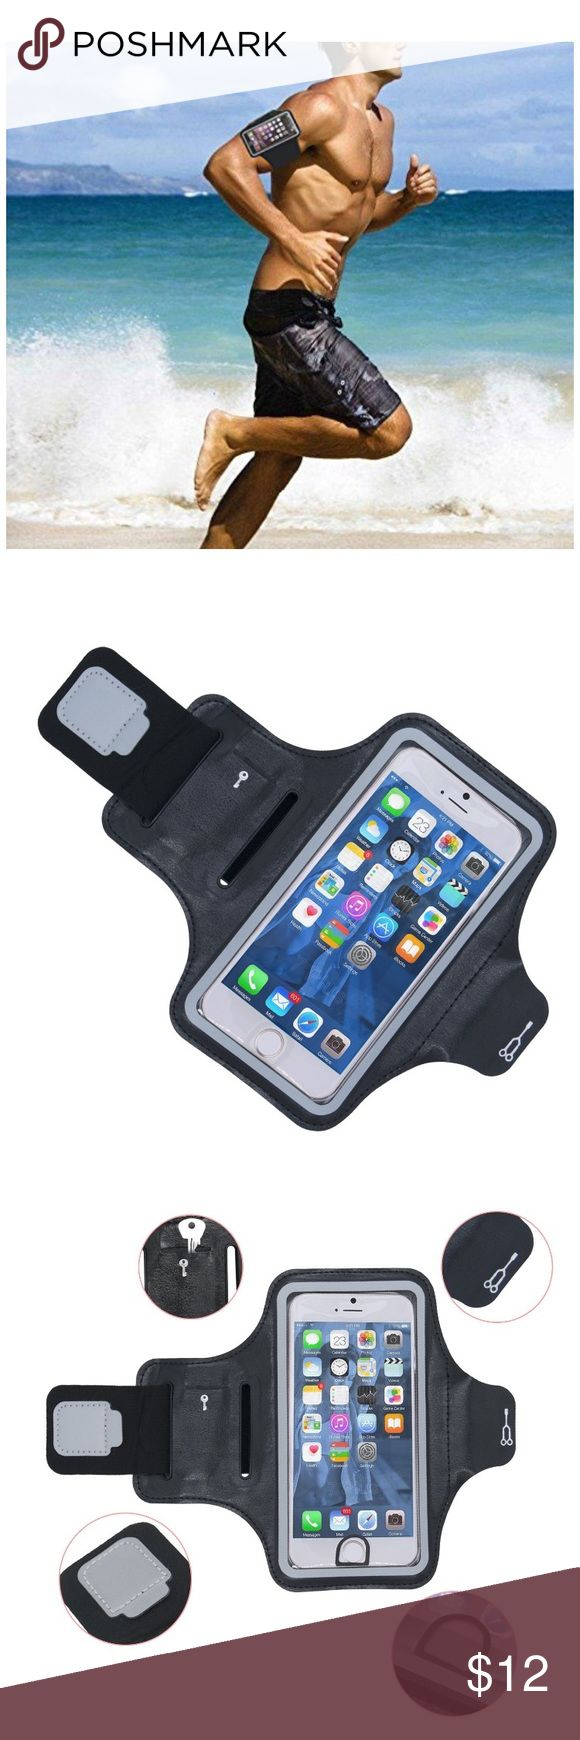 Armband for iPhone 7 Plus 6 Plus 6s Plus Cell Phon Unisex Armband for iPhone 7 Plus 6 Plus 6s Plus Cell Phone Sports Running Exercise Workout Armband for Samsung Galaxy S6/S7 Edge s8/s8 Plus LG G5 Note 2/3/4/5 Key Holder 5. 5Inch Black Accessories Phone Cases